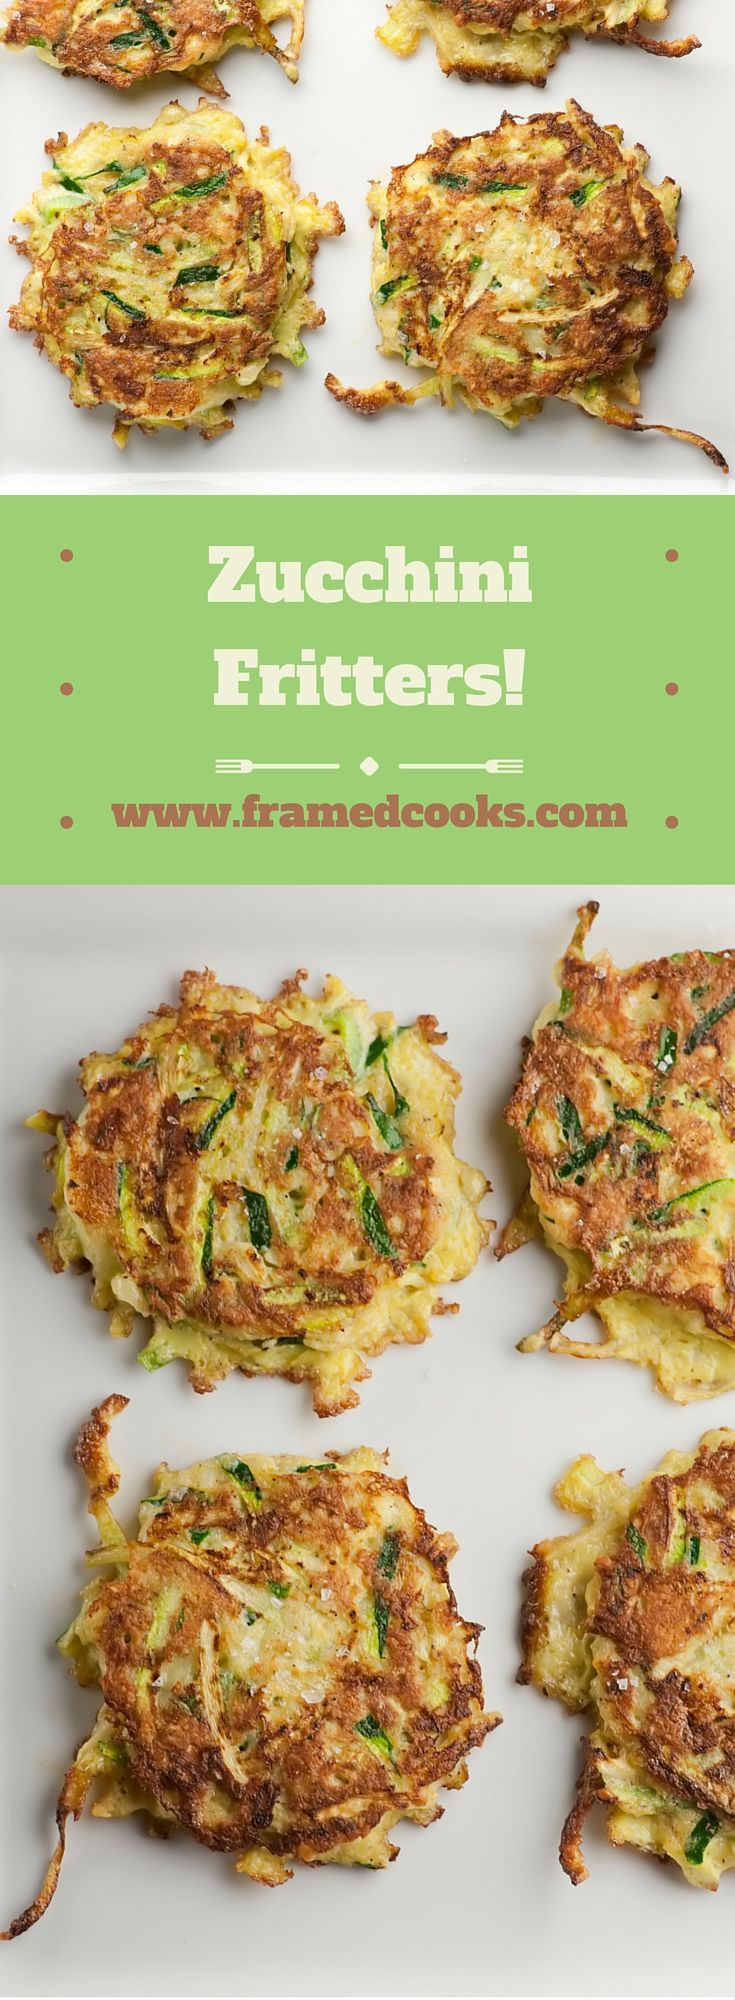 Here's what you do with all that summer squash! Make